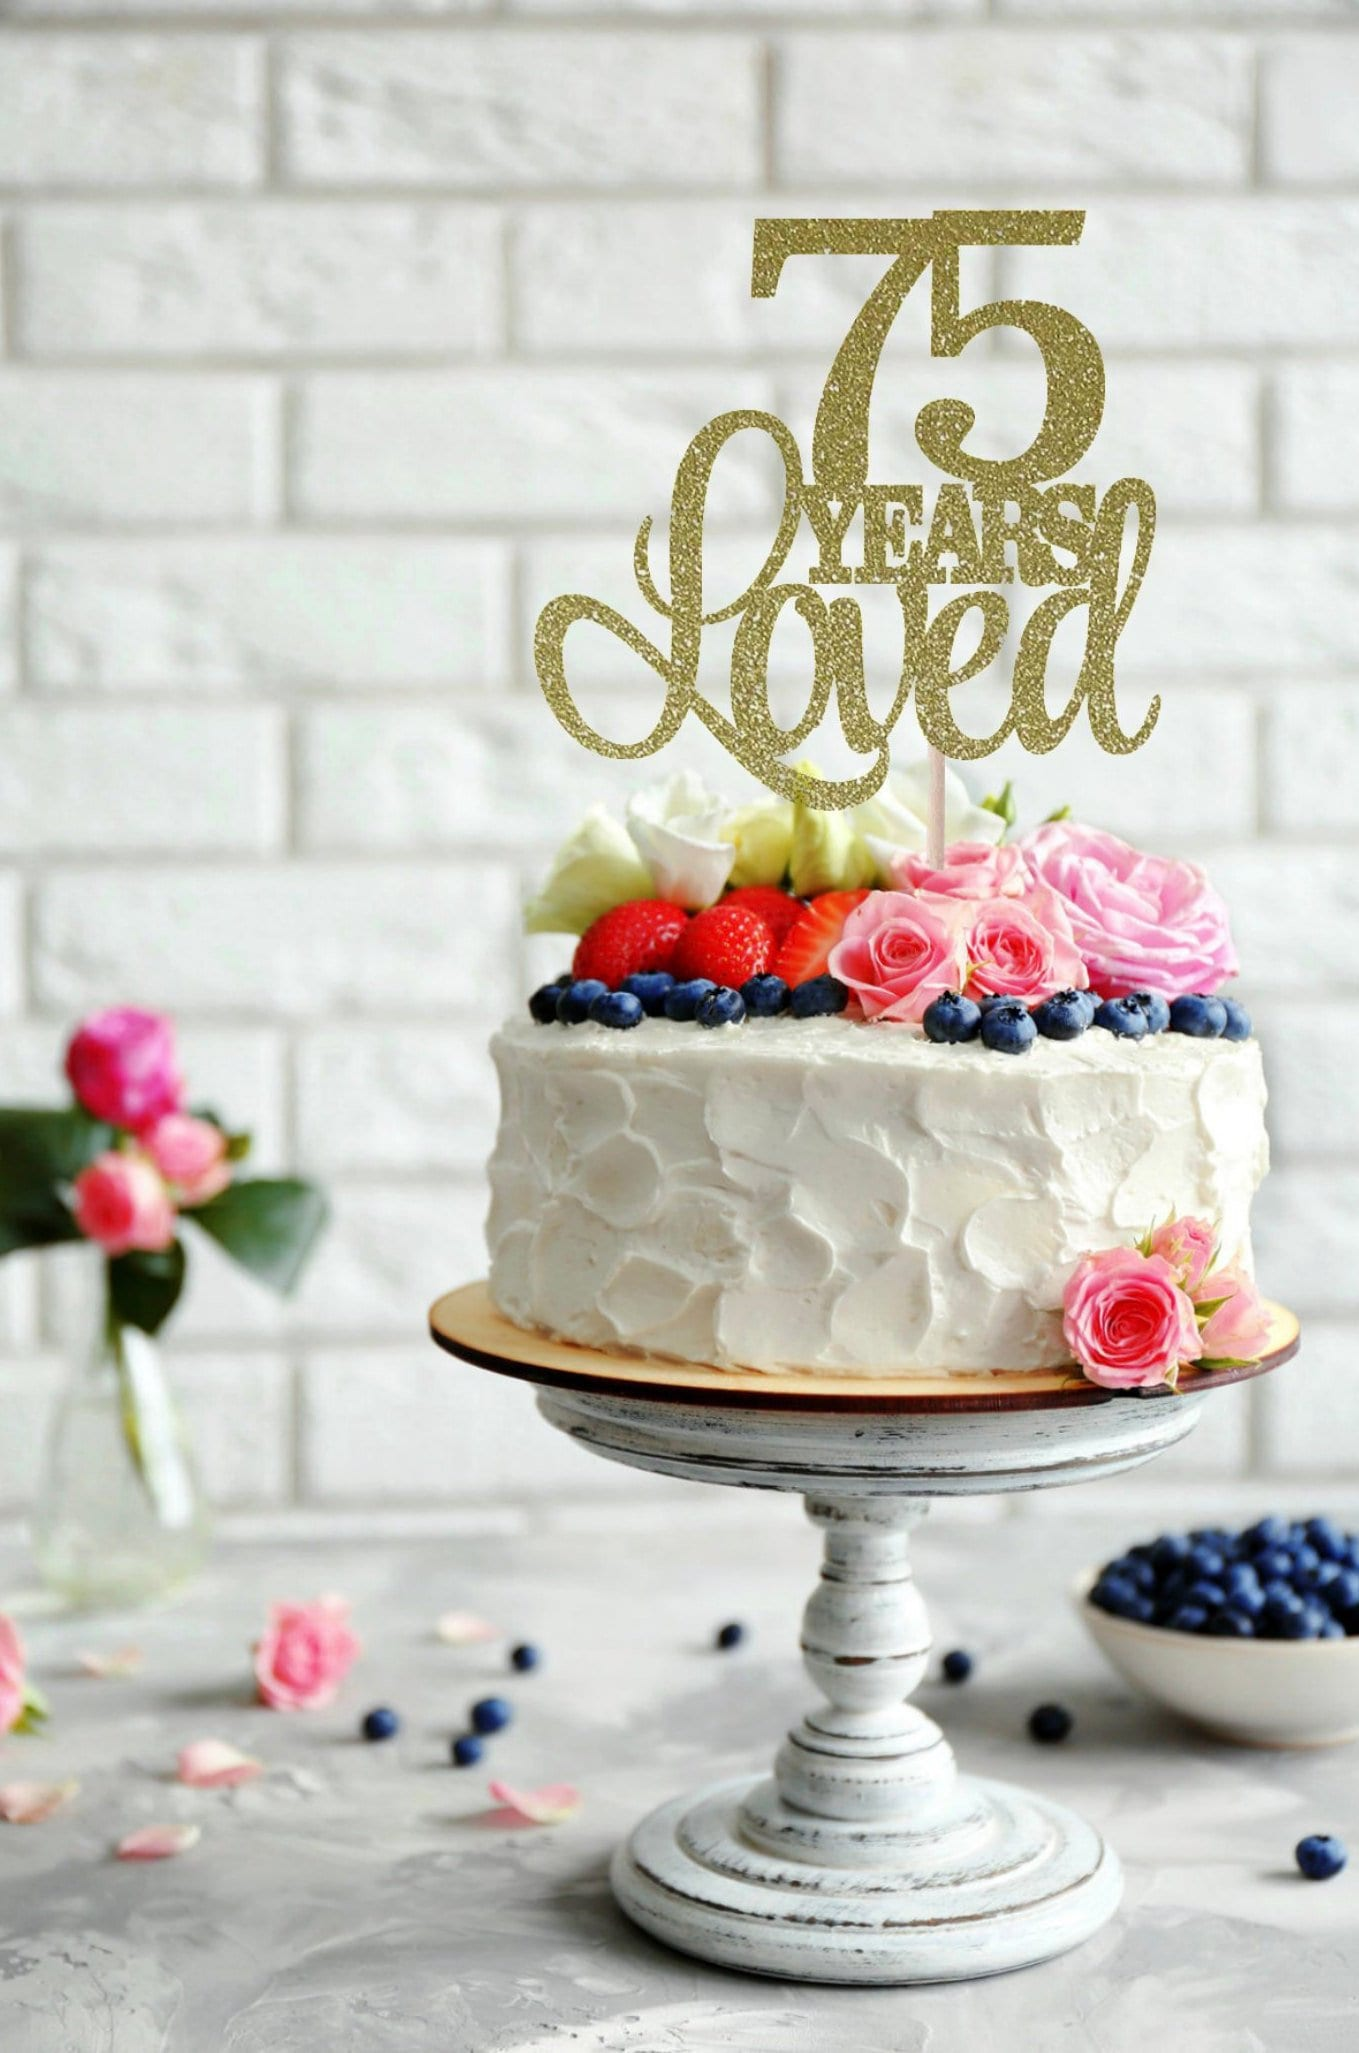 75 Years Loved Cake Topper 75th Birthday Cake Topper Happy ...